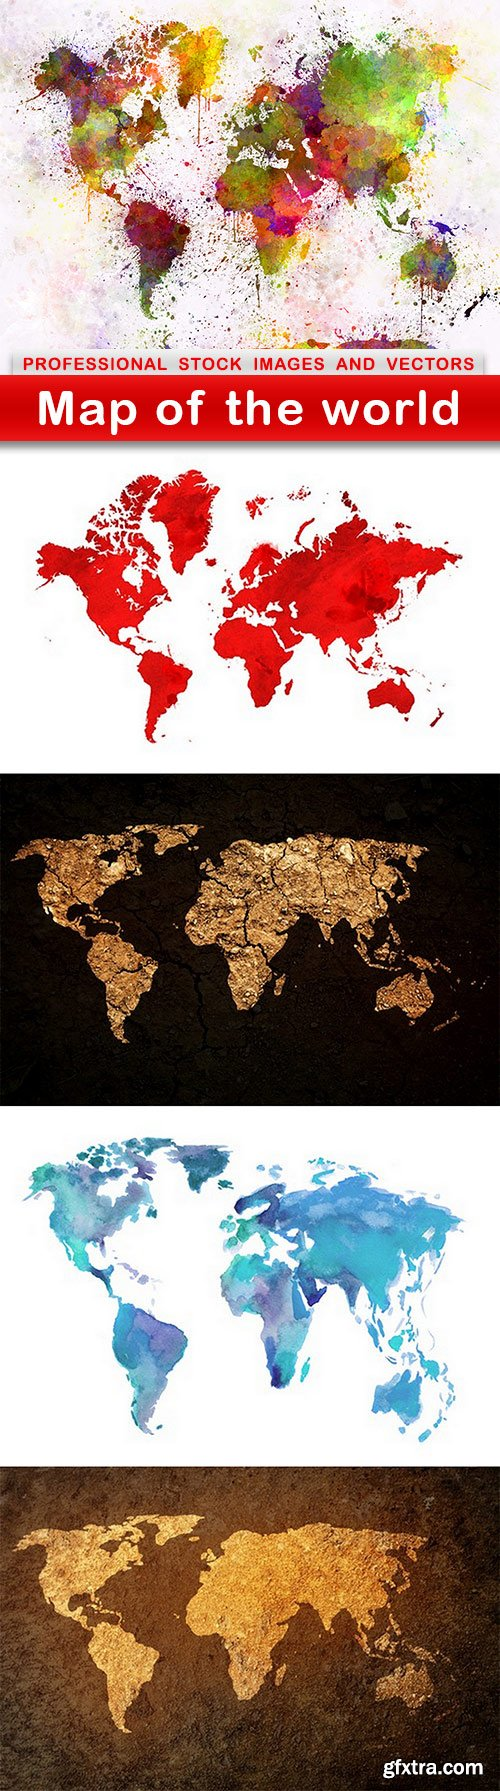 Map of the world - 5 UHQ JPEG